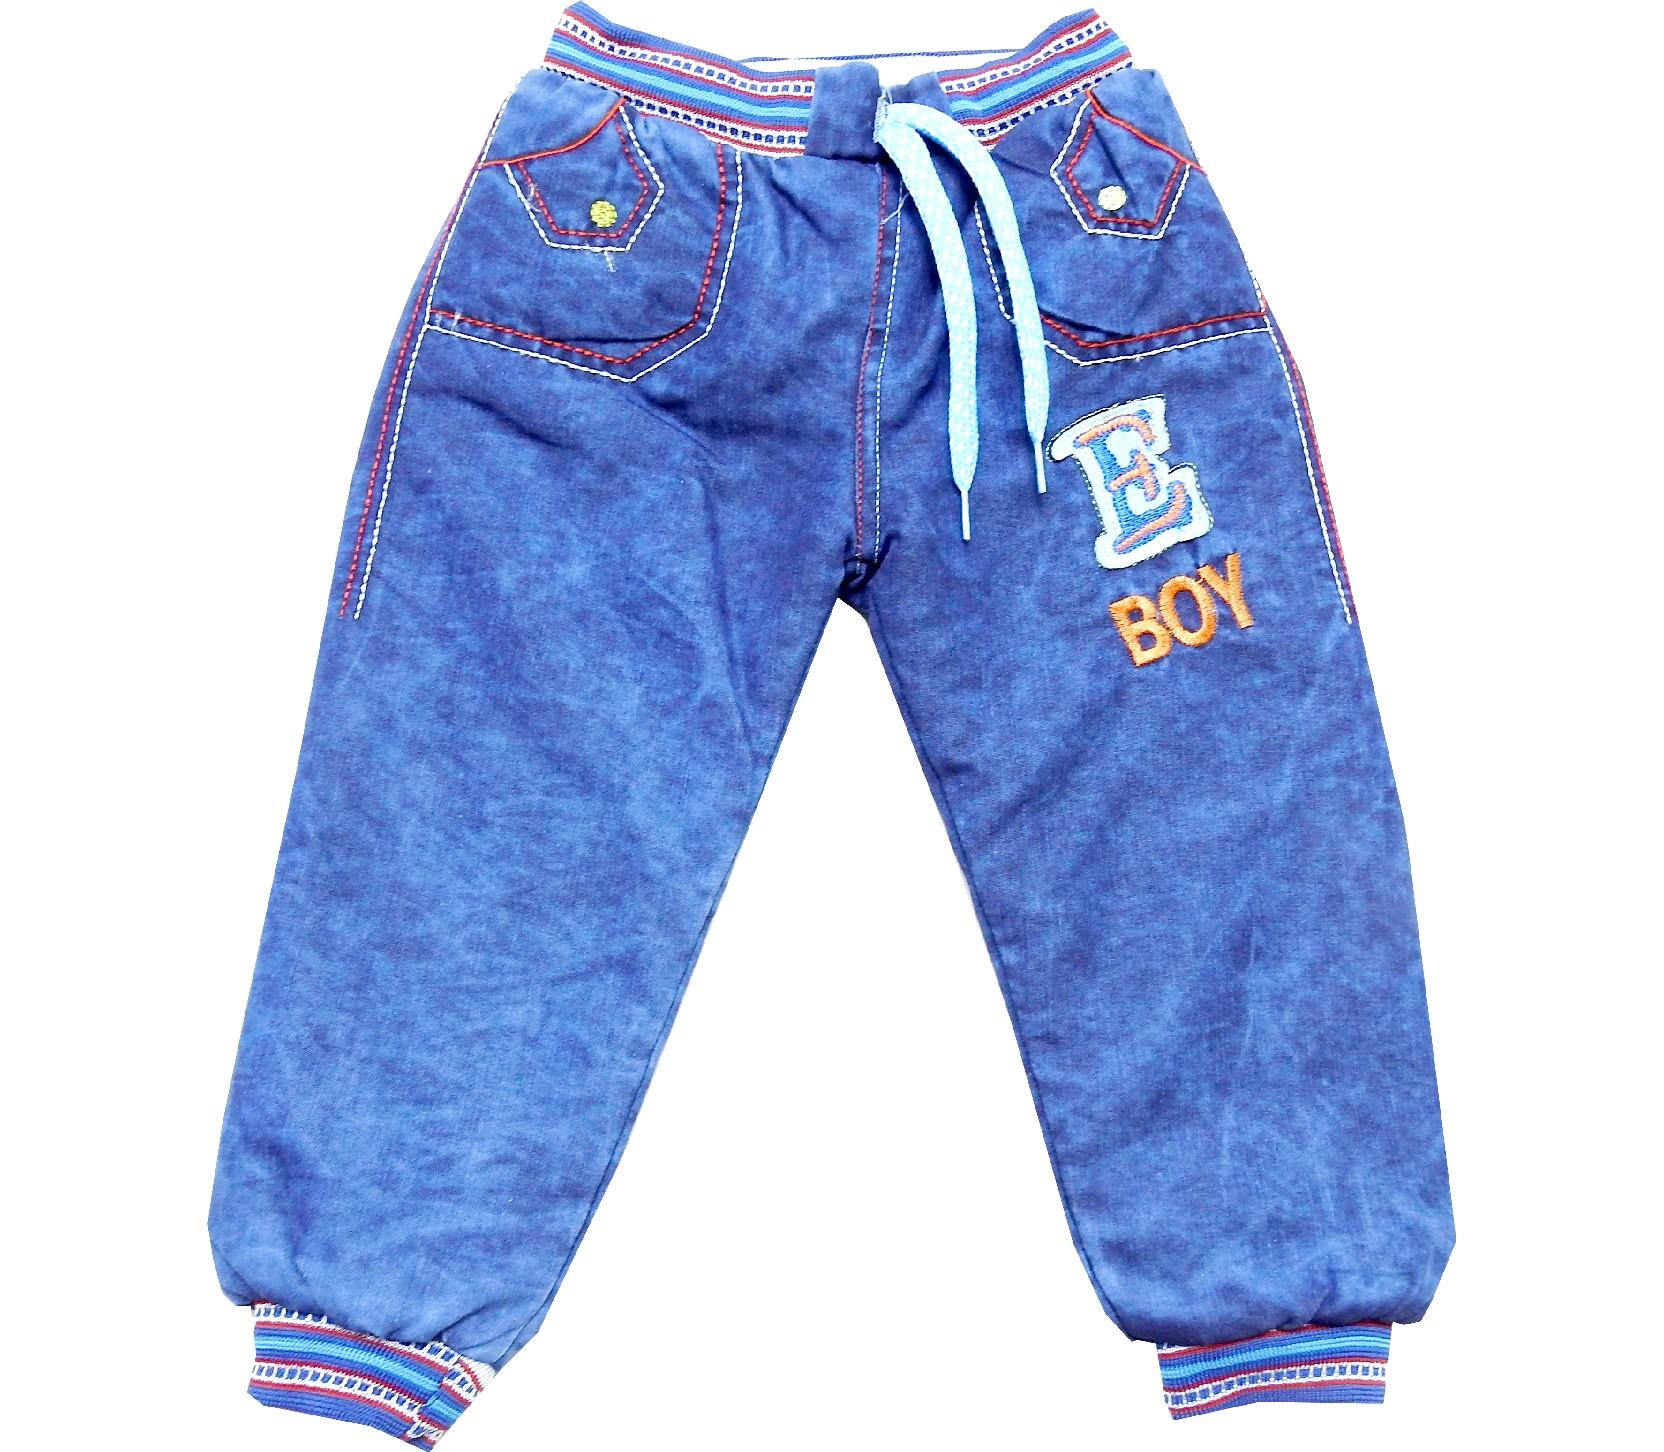 Wholesale E Boy sewed jeans pant for boy (1-2-3-4 age)